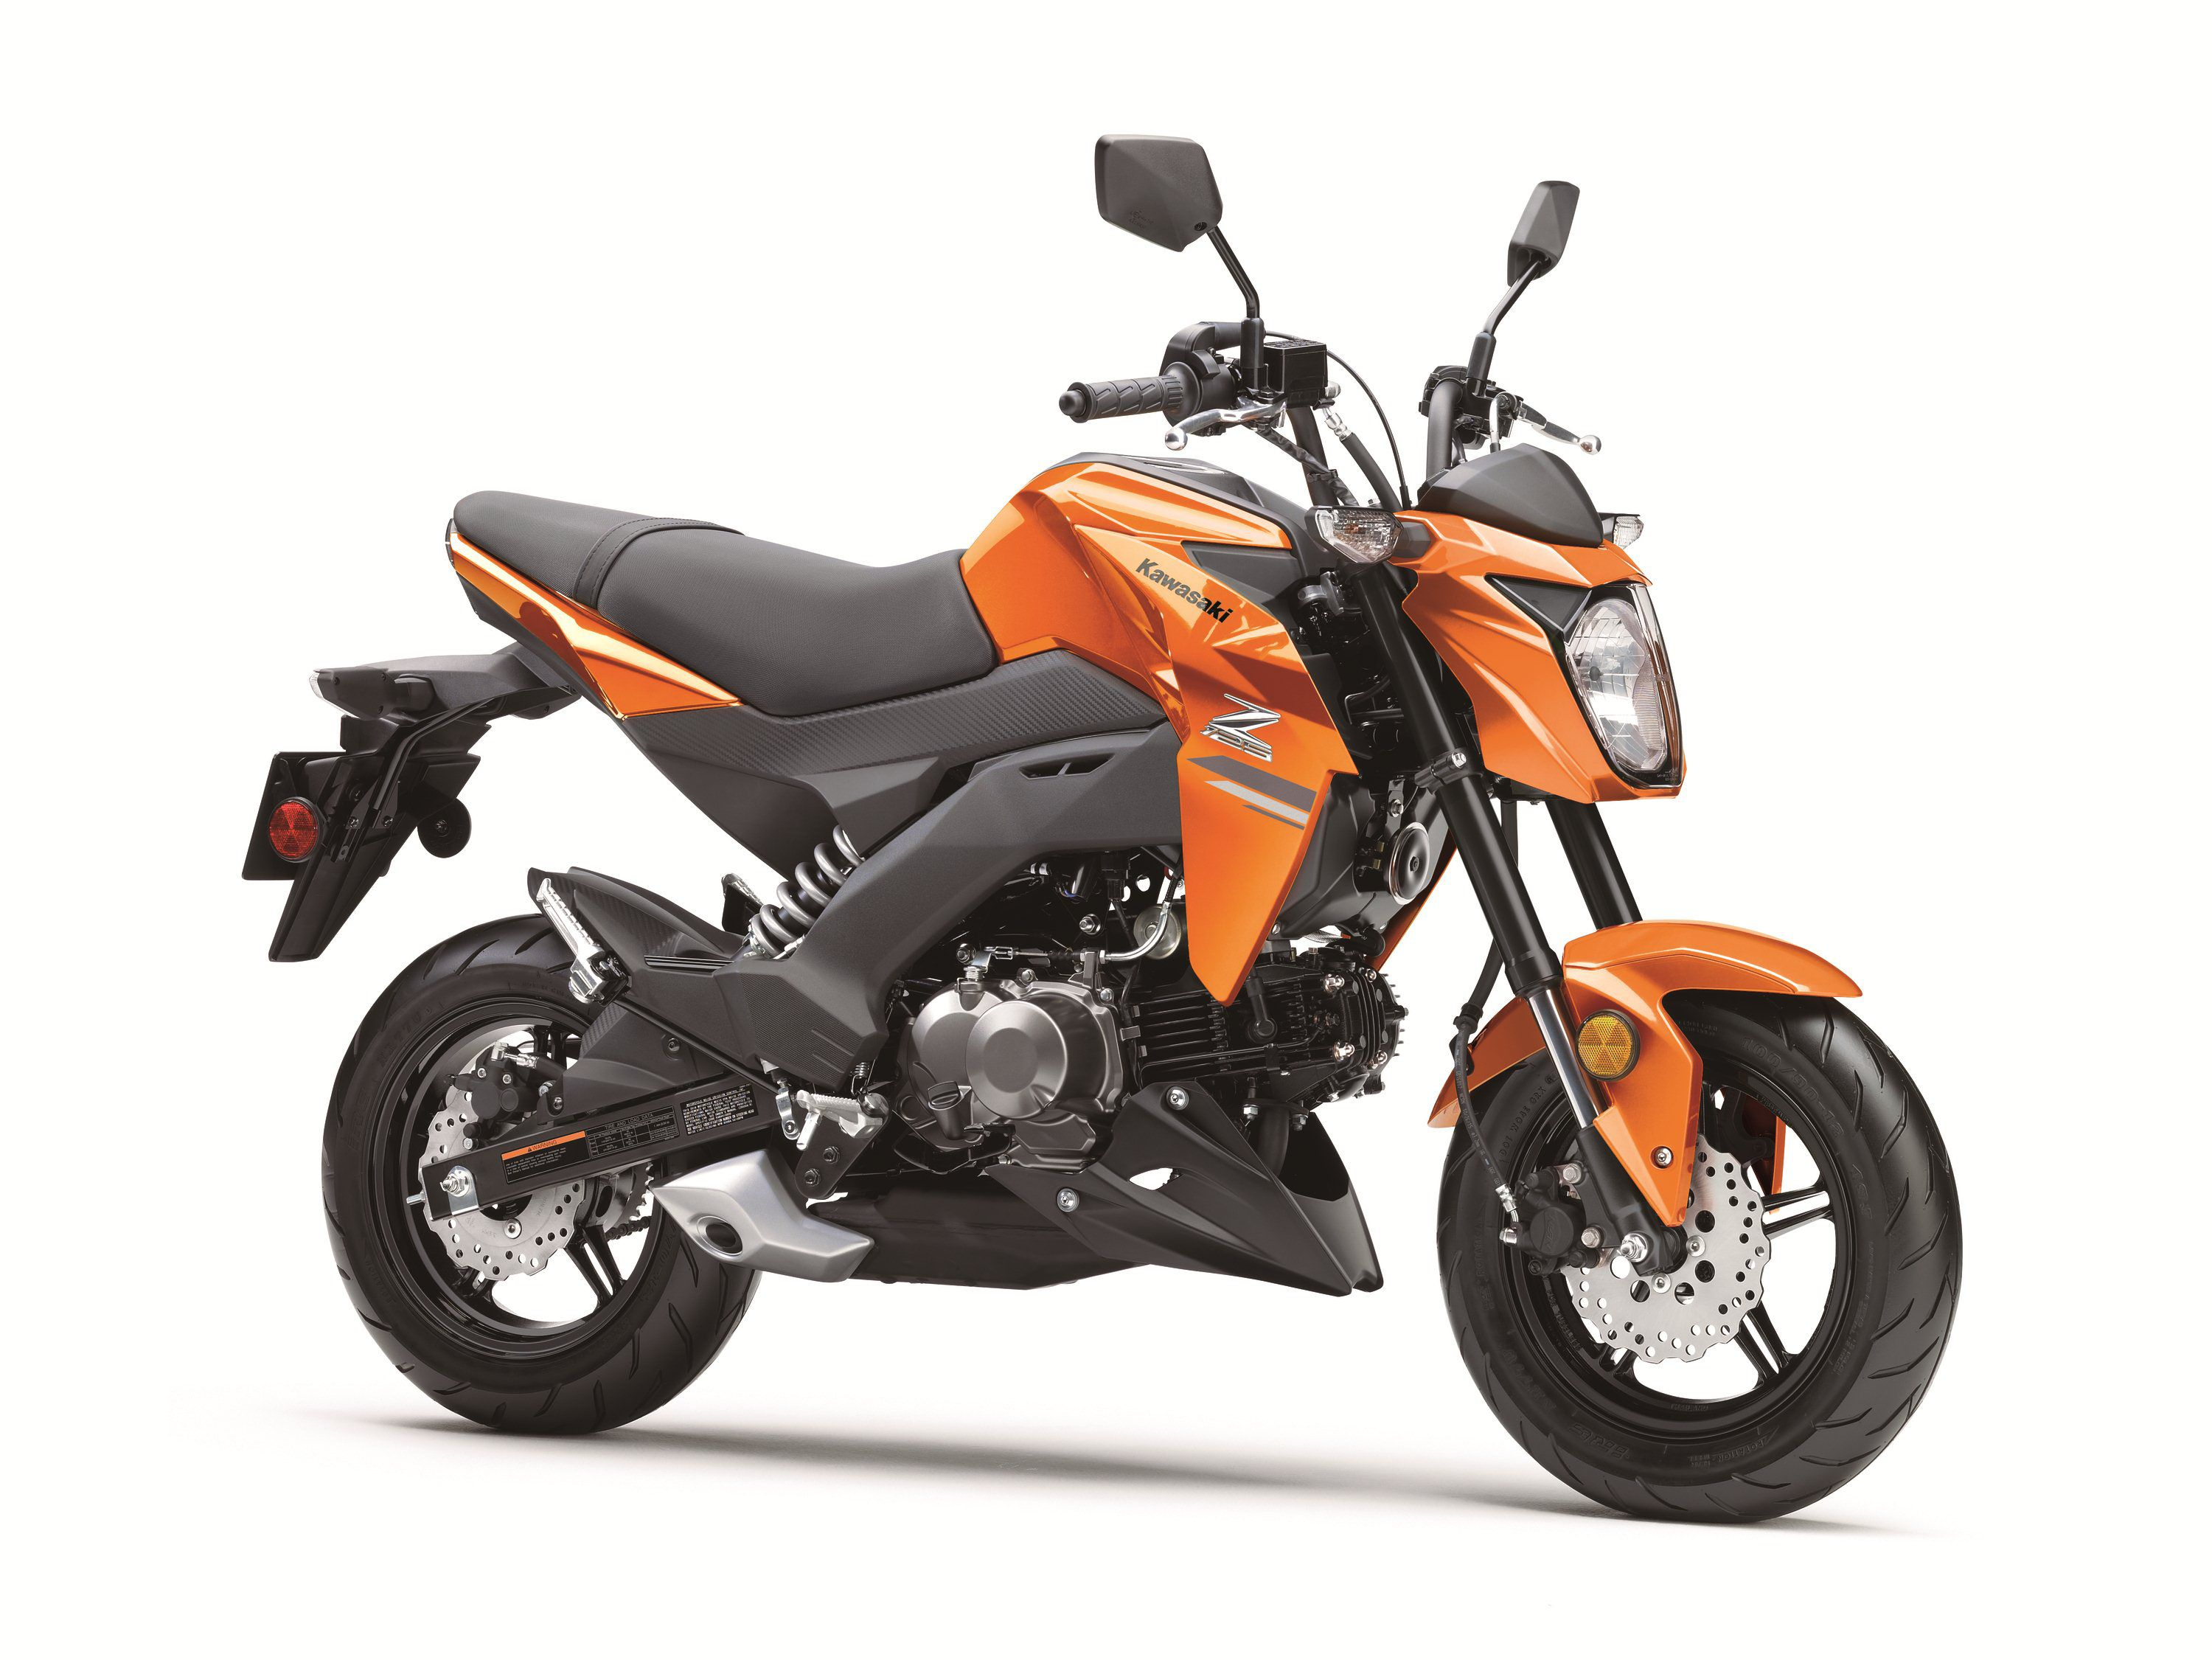 Best Beginner Motorcycles 2020.Great Beginner Motorcycles To Get You Into Riding Cycle World